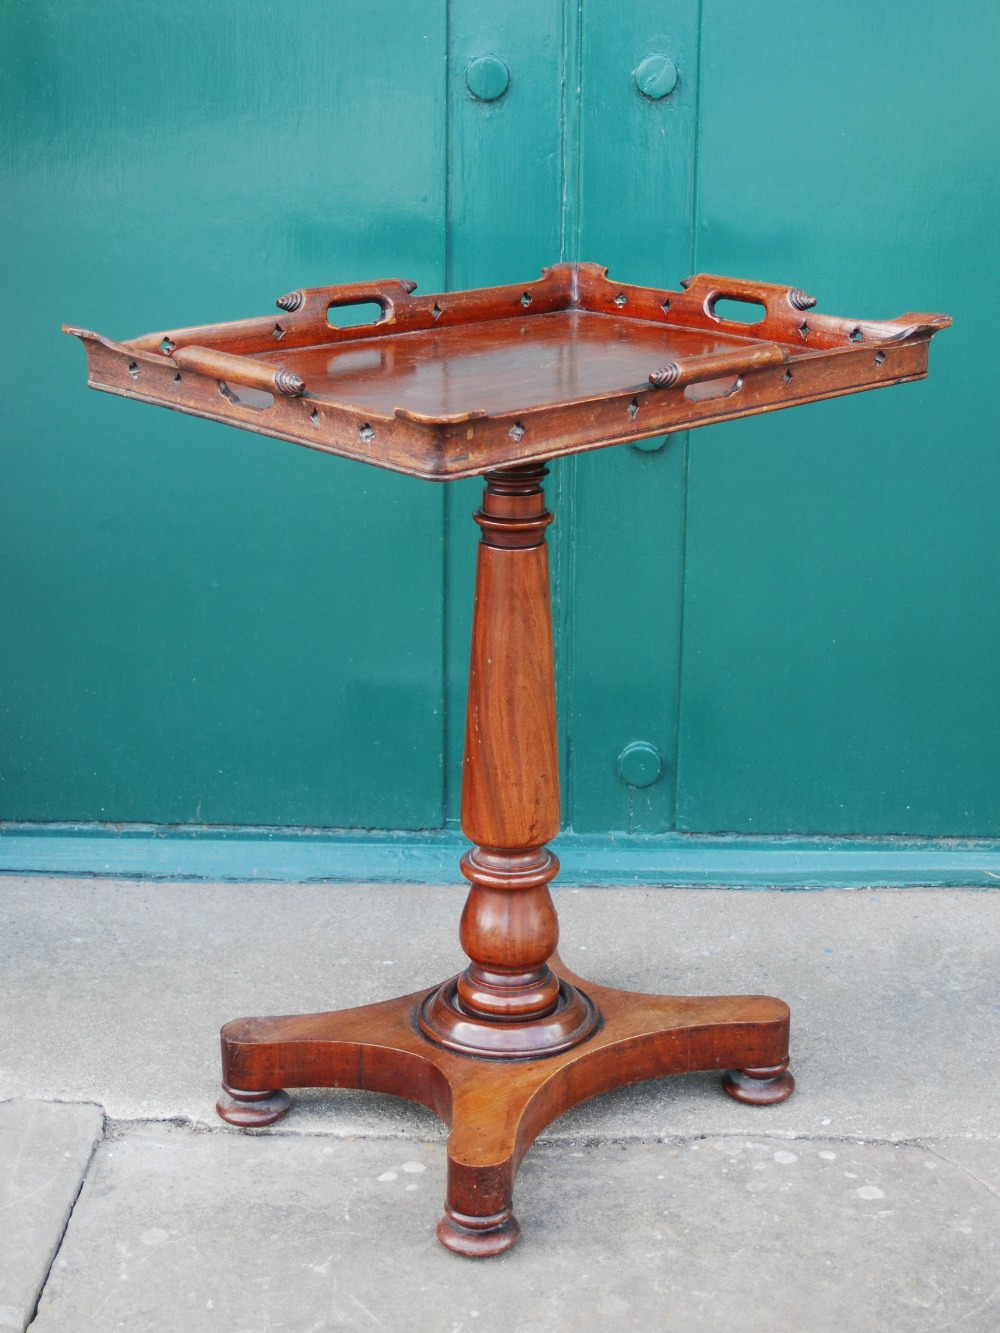 Lot 11C - A 19th century mahogany tray top occasional table, the rectangular tray top with a pierced gallery